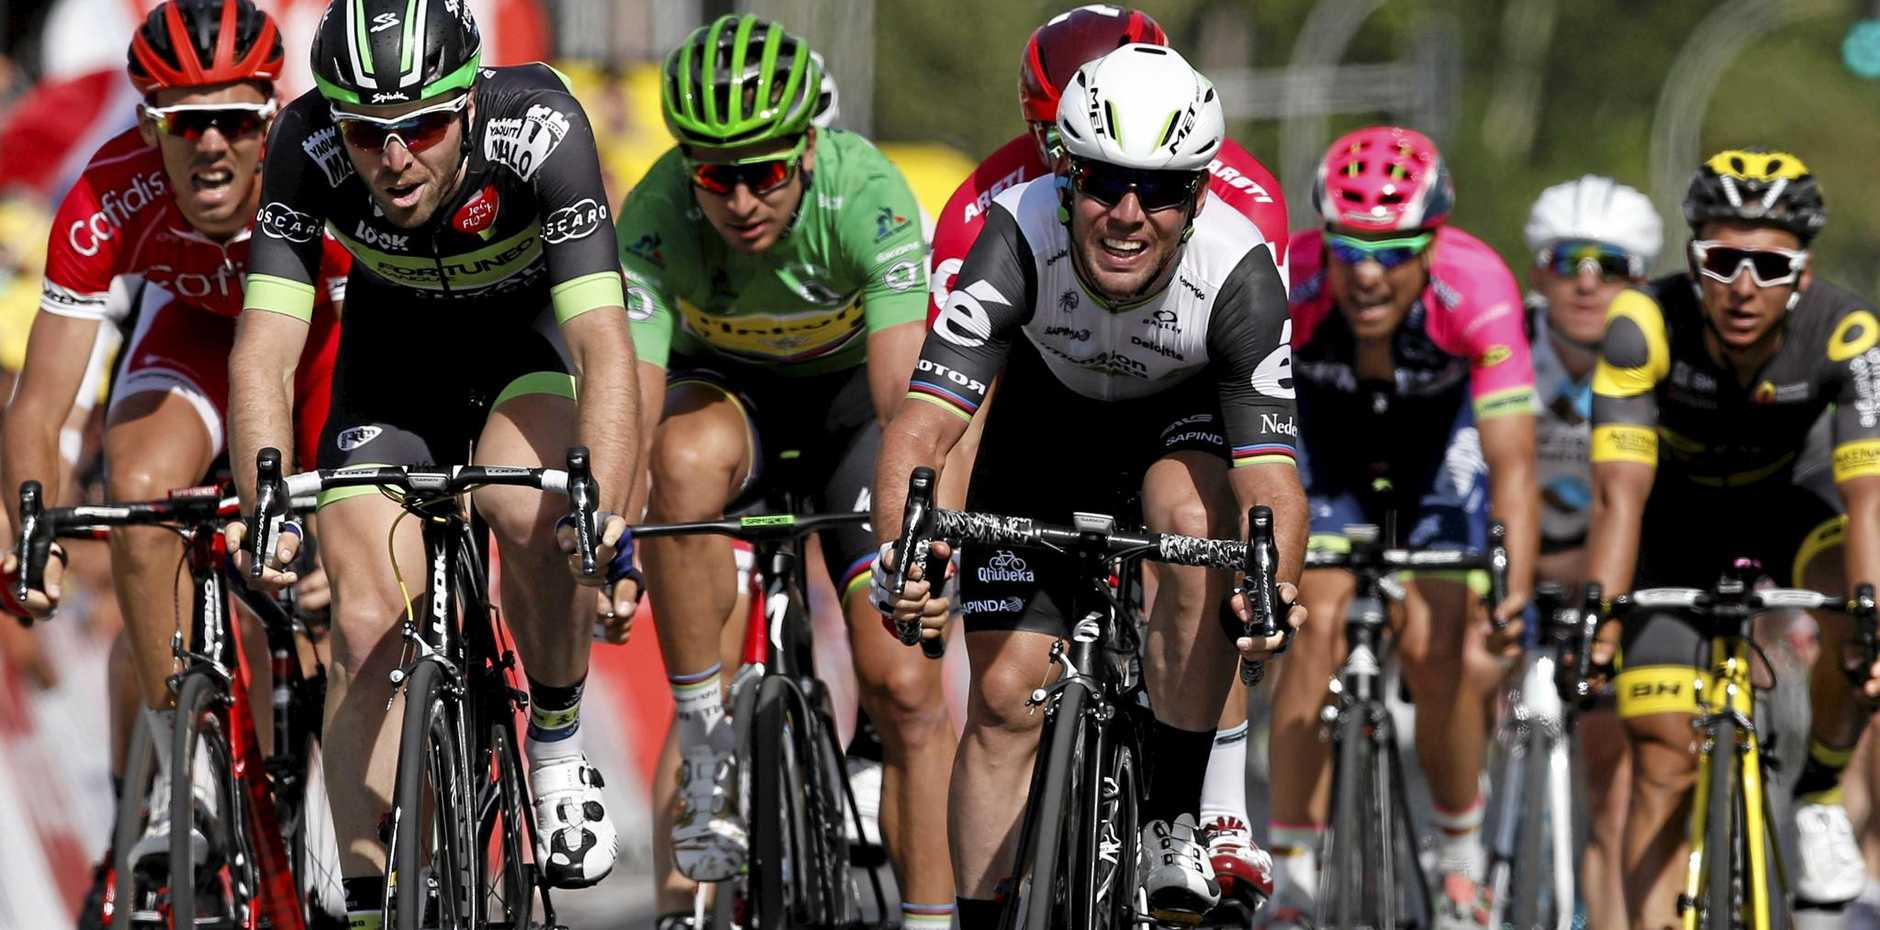 TOO QUICK: Team Dimension Data rider Mark Cavendish of Great Britain (white helmet) sprints to win the sixth stage of the 103rd edition of the Tour de France over 190.5km between Arpajon-sur-Cere and Montauban.